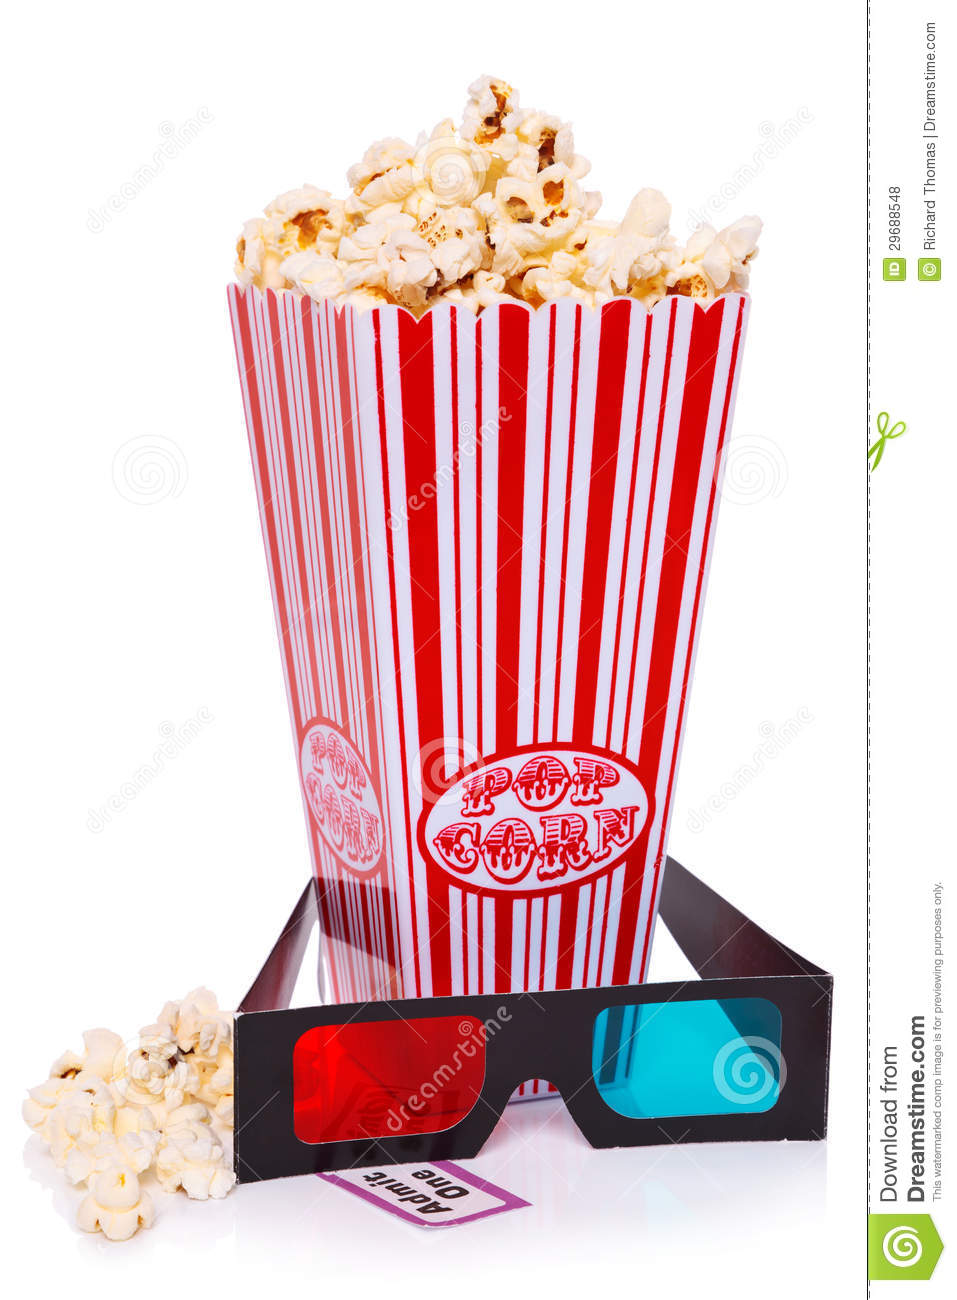 Popcorn, 3D Glasses And Ticket Stock Photo - Image of striped, admit